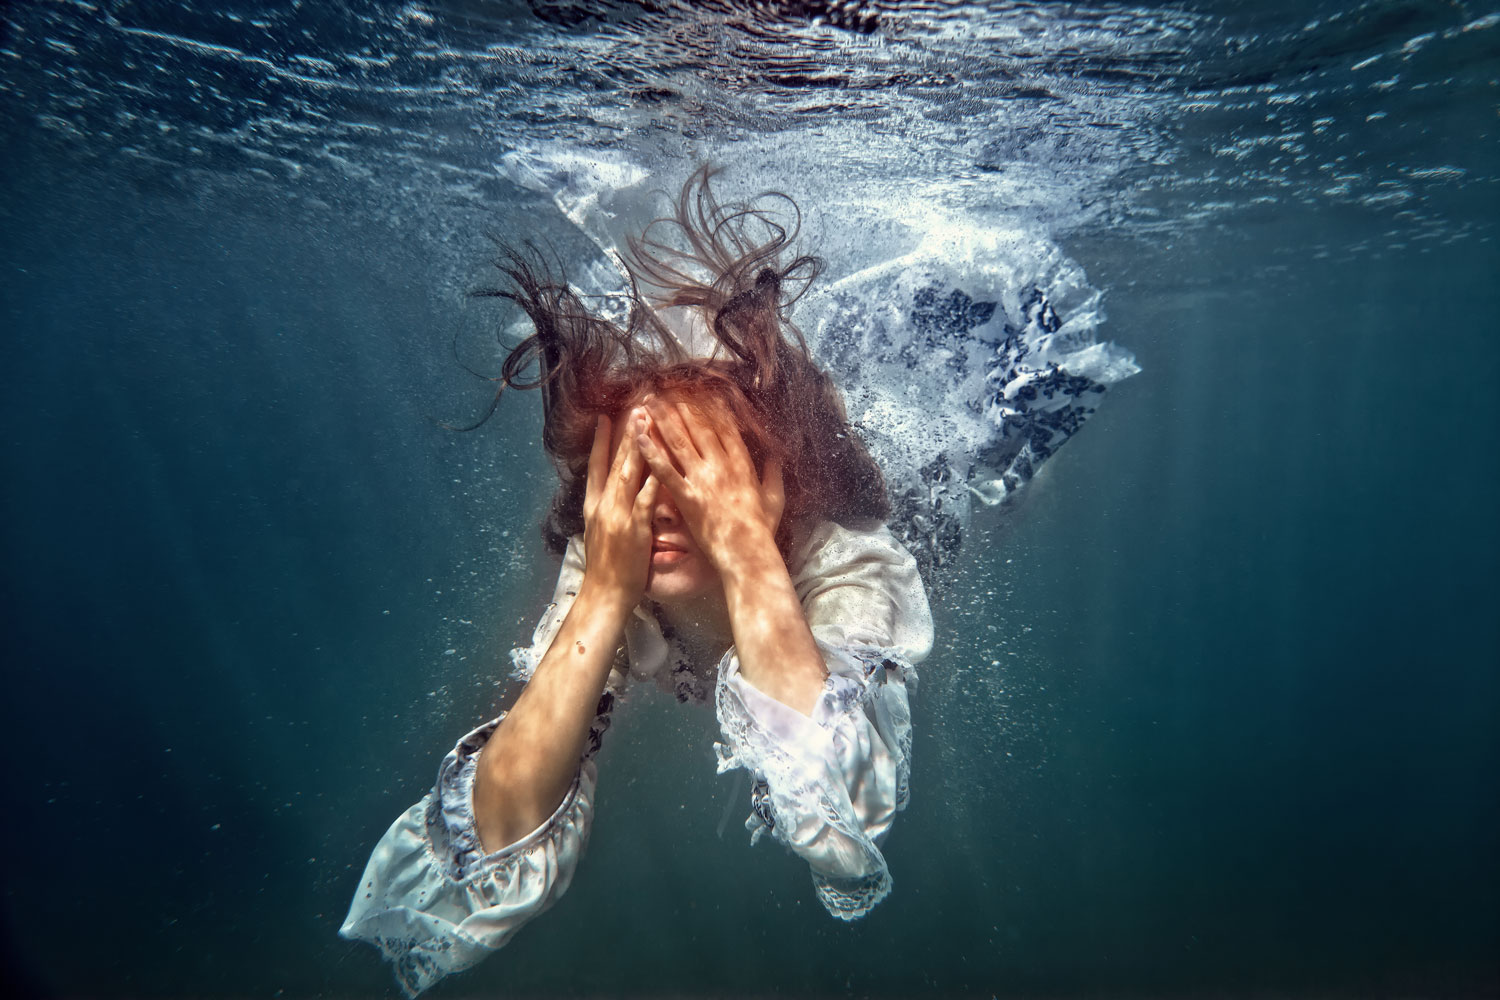 Batophobia: how to overcome the fear of depth while swimming